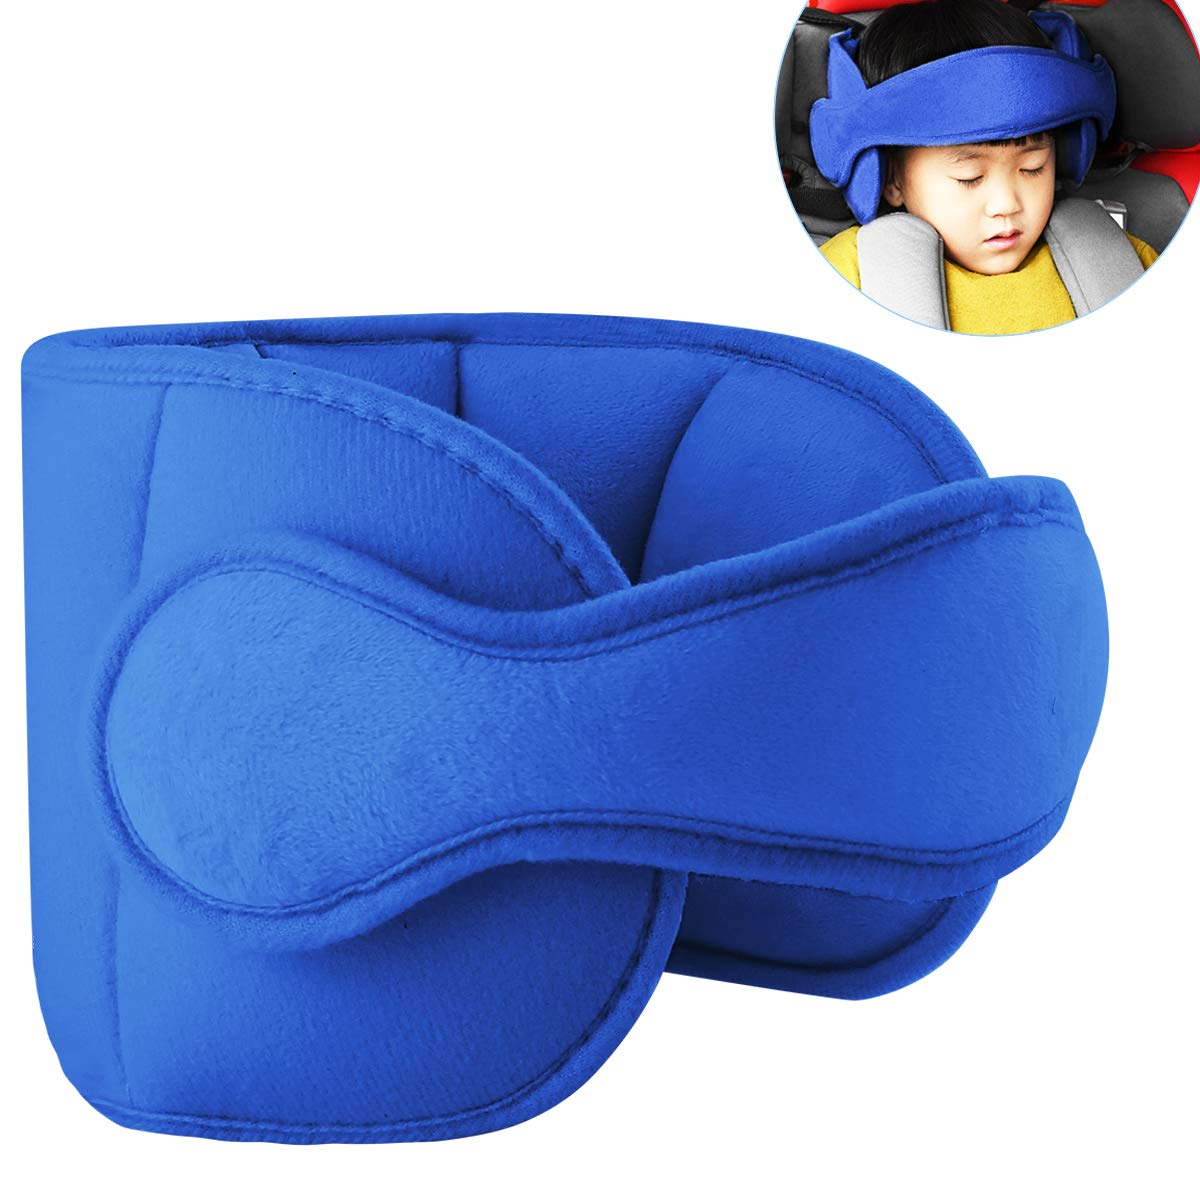 Nuolate2019 Toddler Car Seat Head Support Child Safety Car Seat Neck Relief Holder Baby Sleep Aid Strap Kids Gift (Blue)